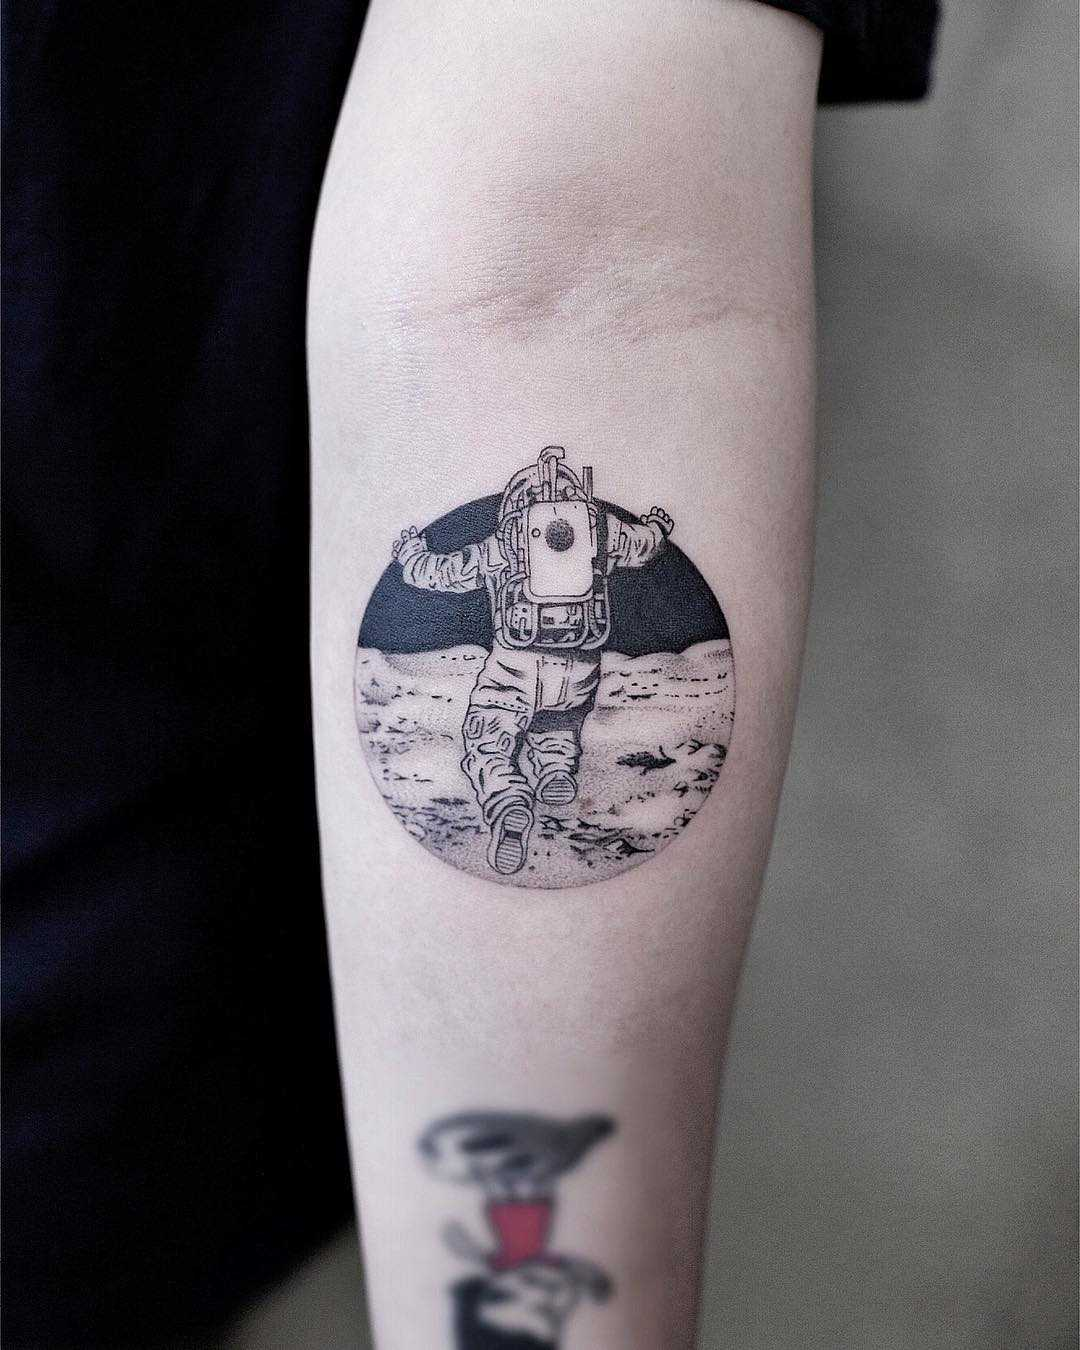 Astronaut on the moon tattoo by Aki Wong